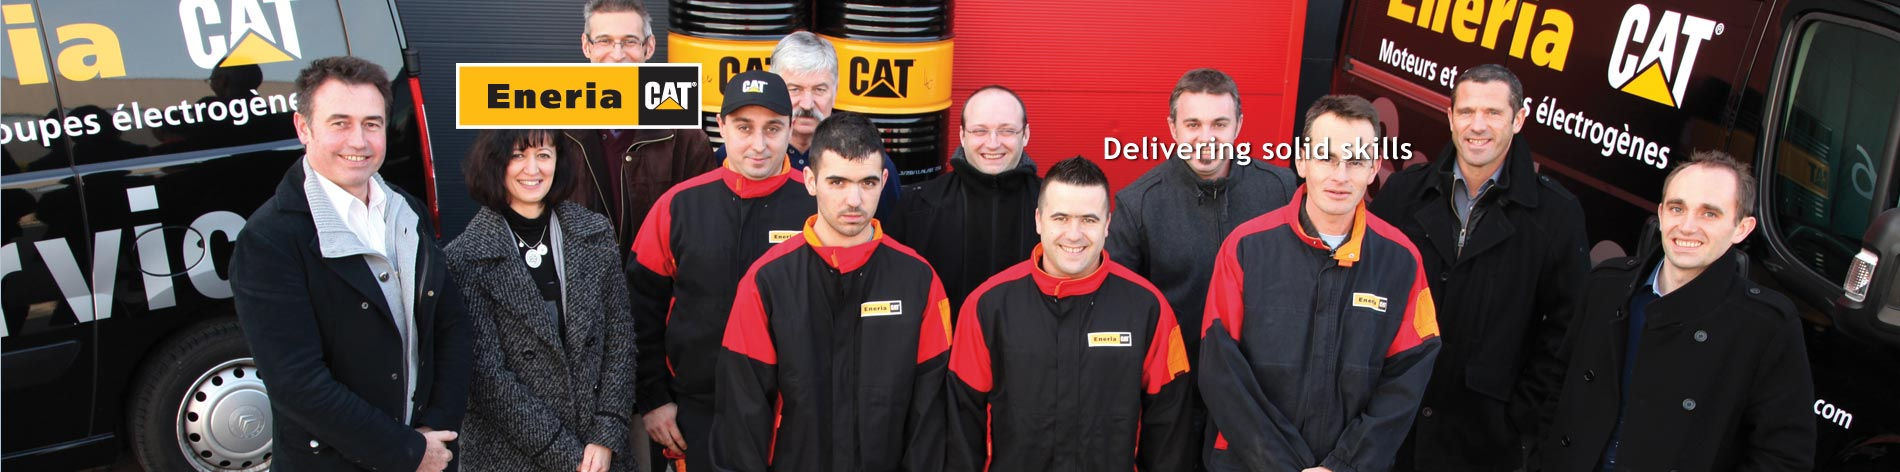 Whatever your needs, our business engineers and technicians are standing by to serve you